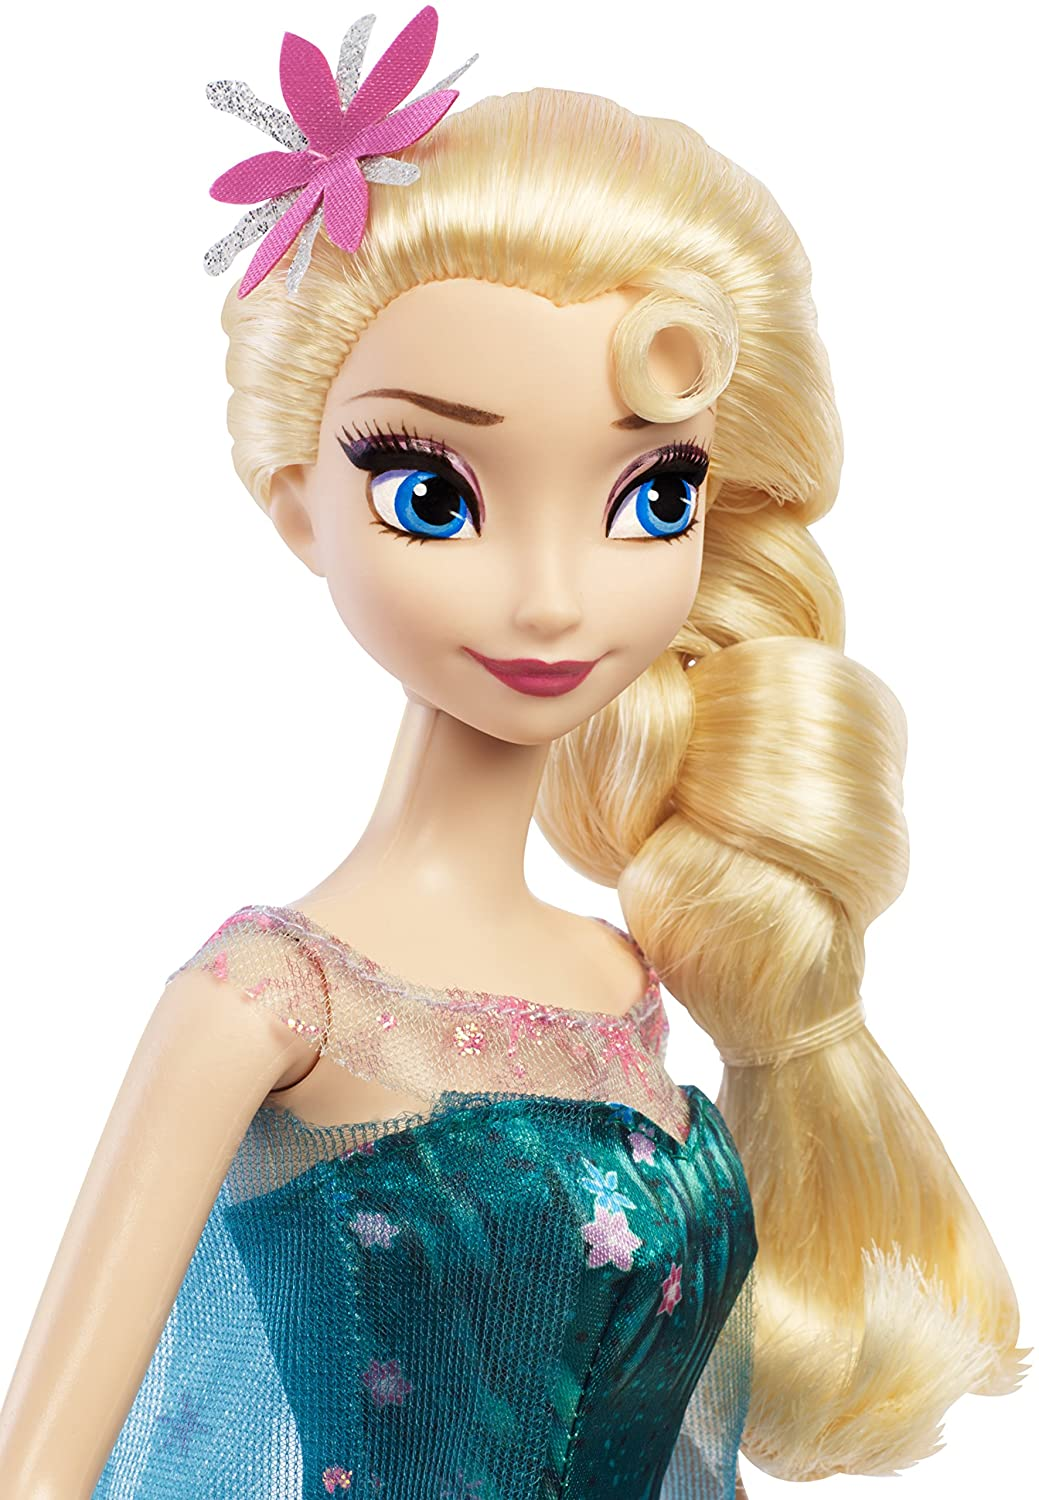 Disney Frozen Elsa doll - 12 inches